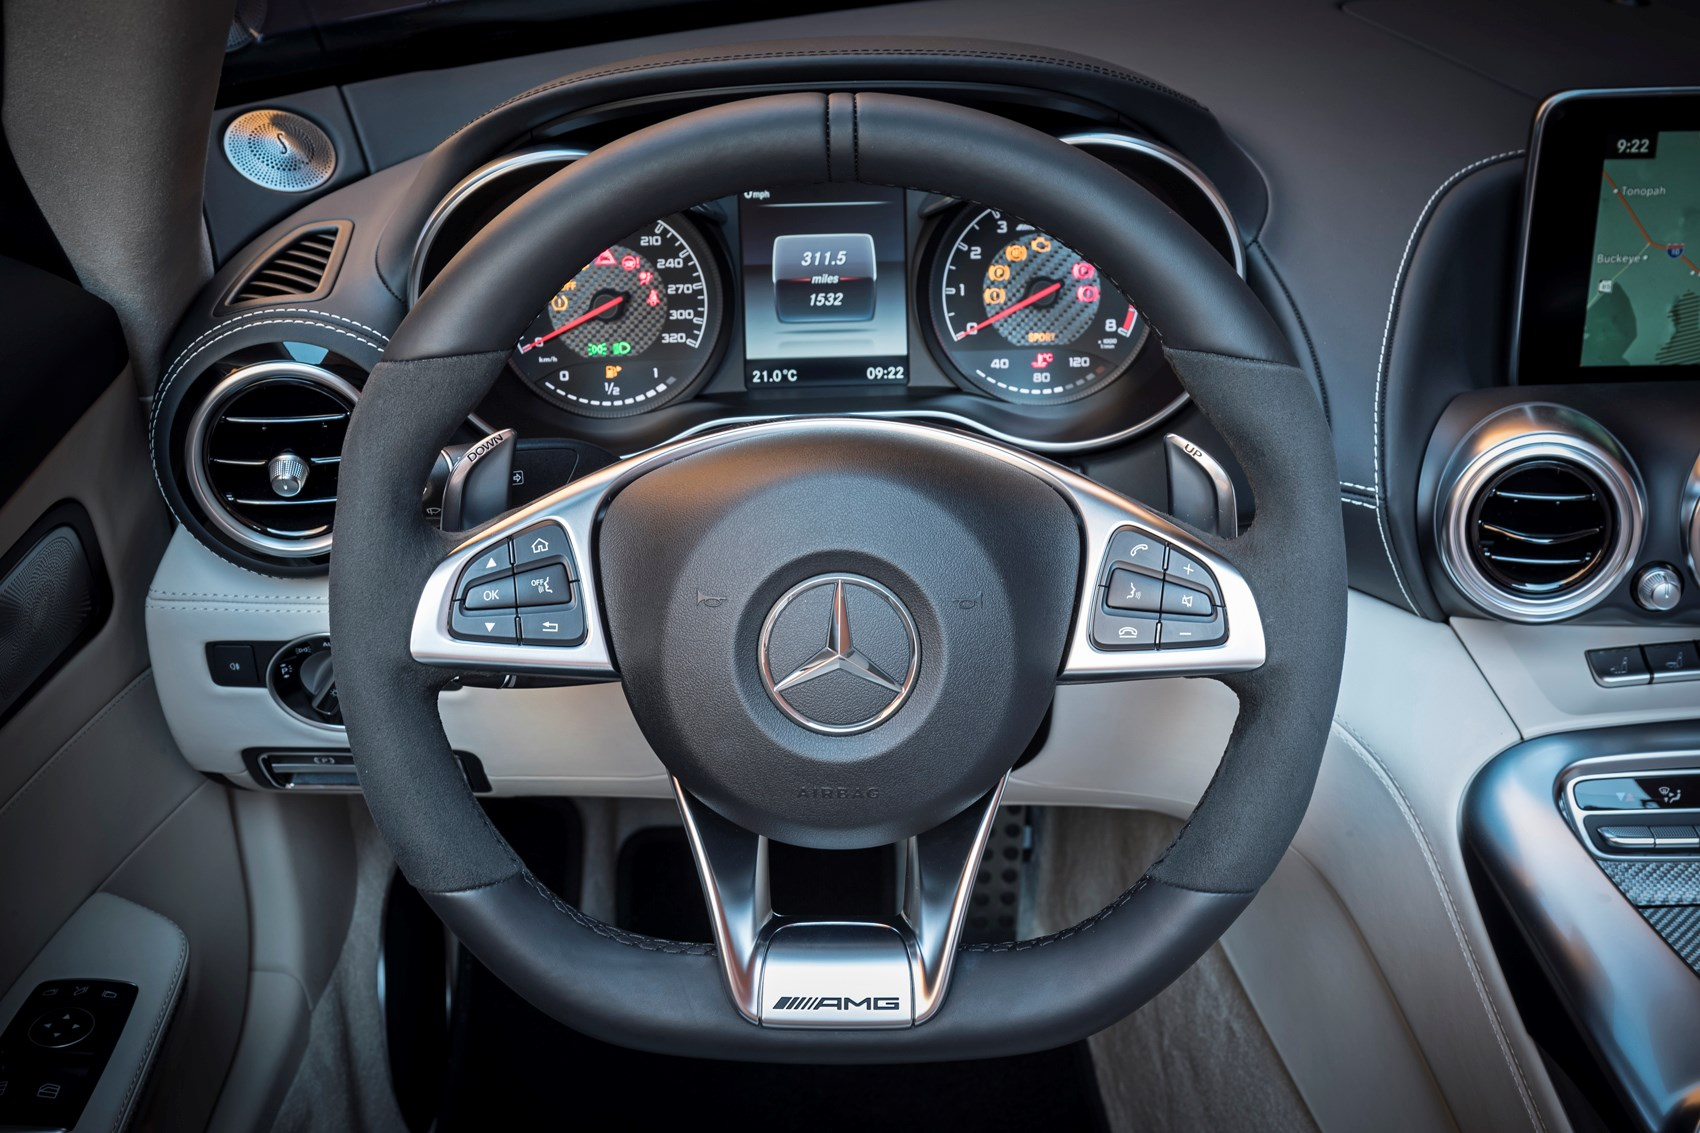 Alfa img showing gt sls amg gt roadster interior -  Mercedes Benz Amg Gt Roadster 2017 Interior Detail